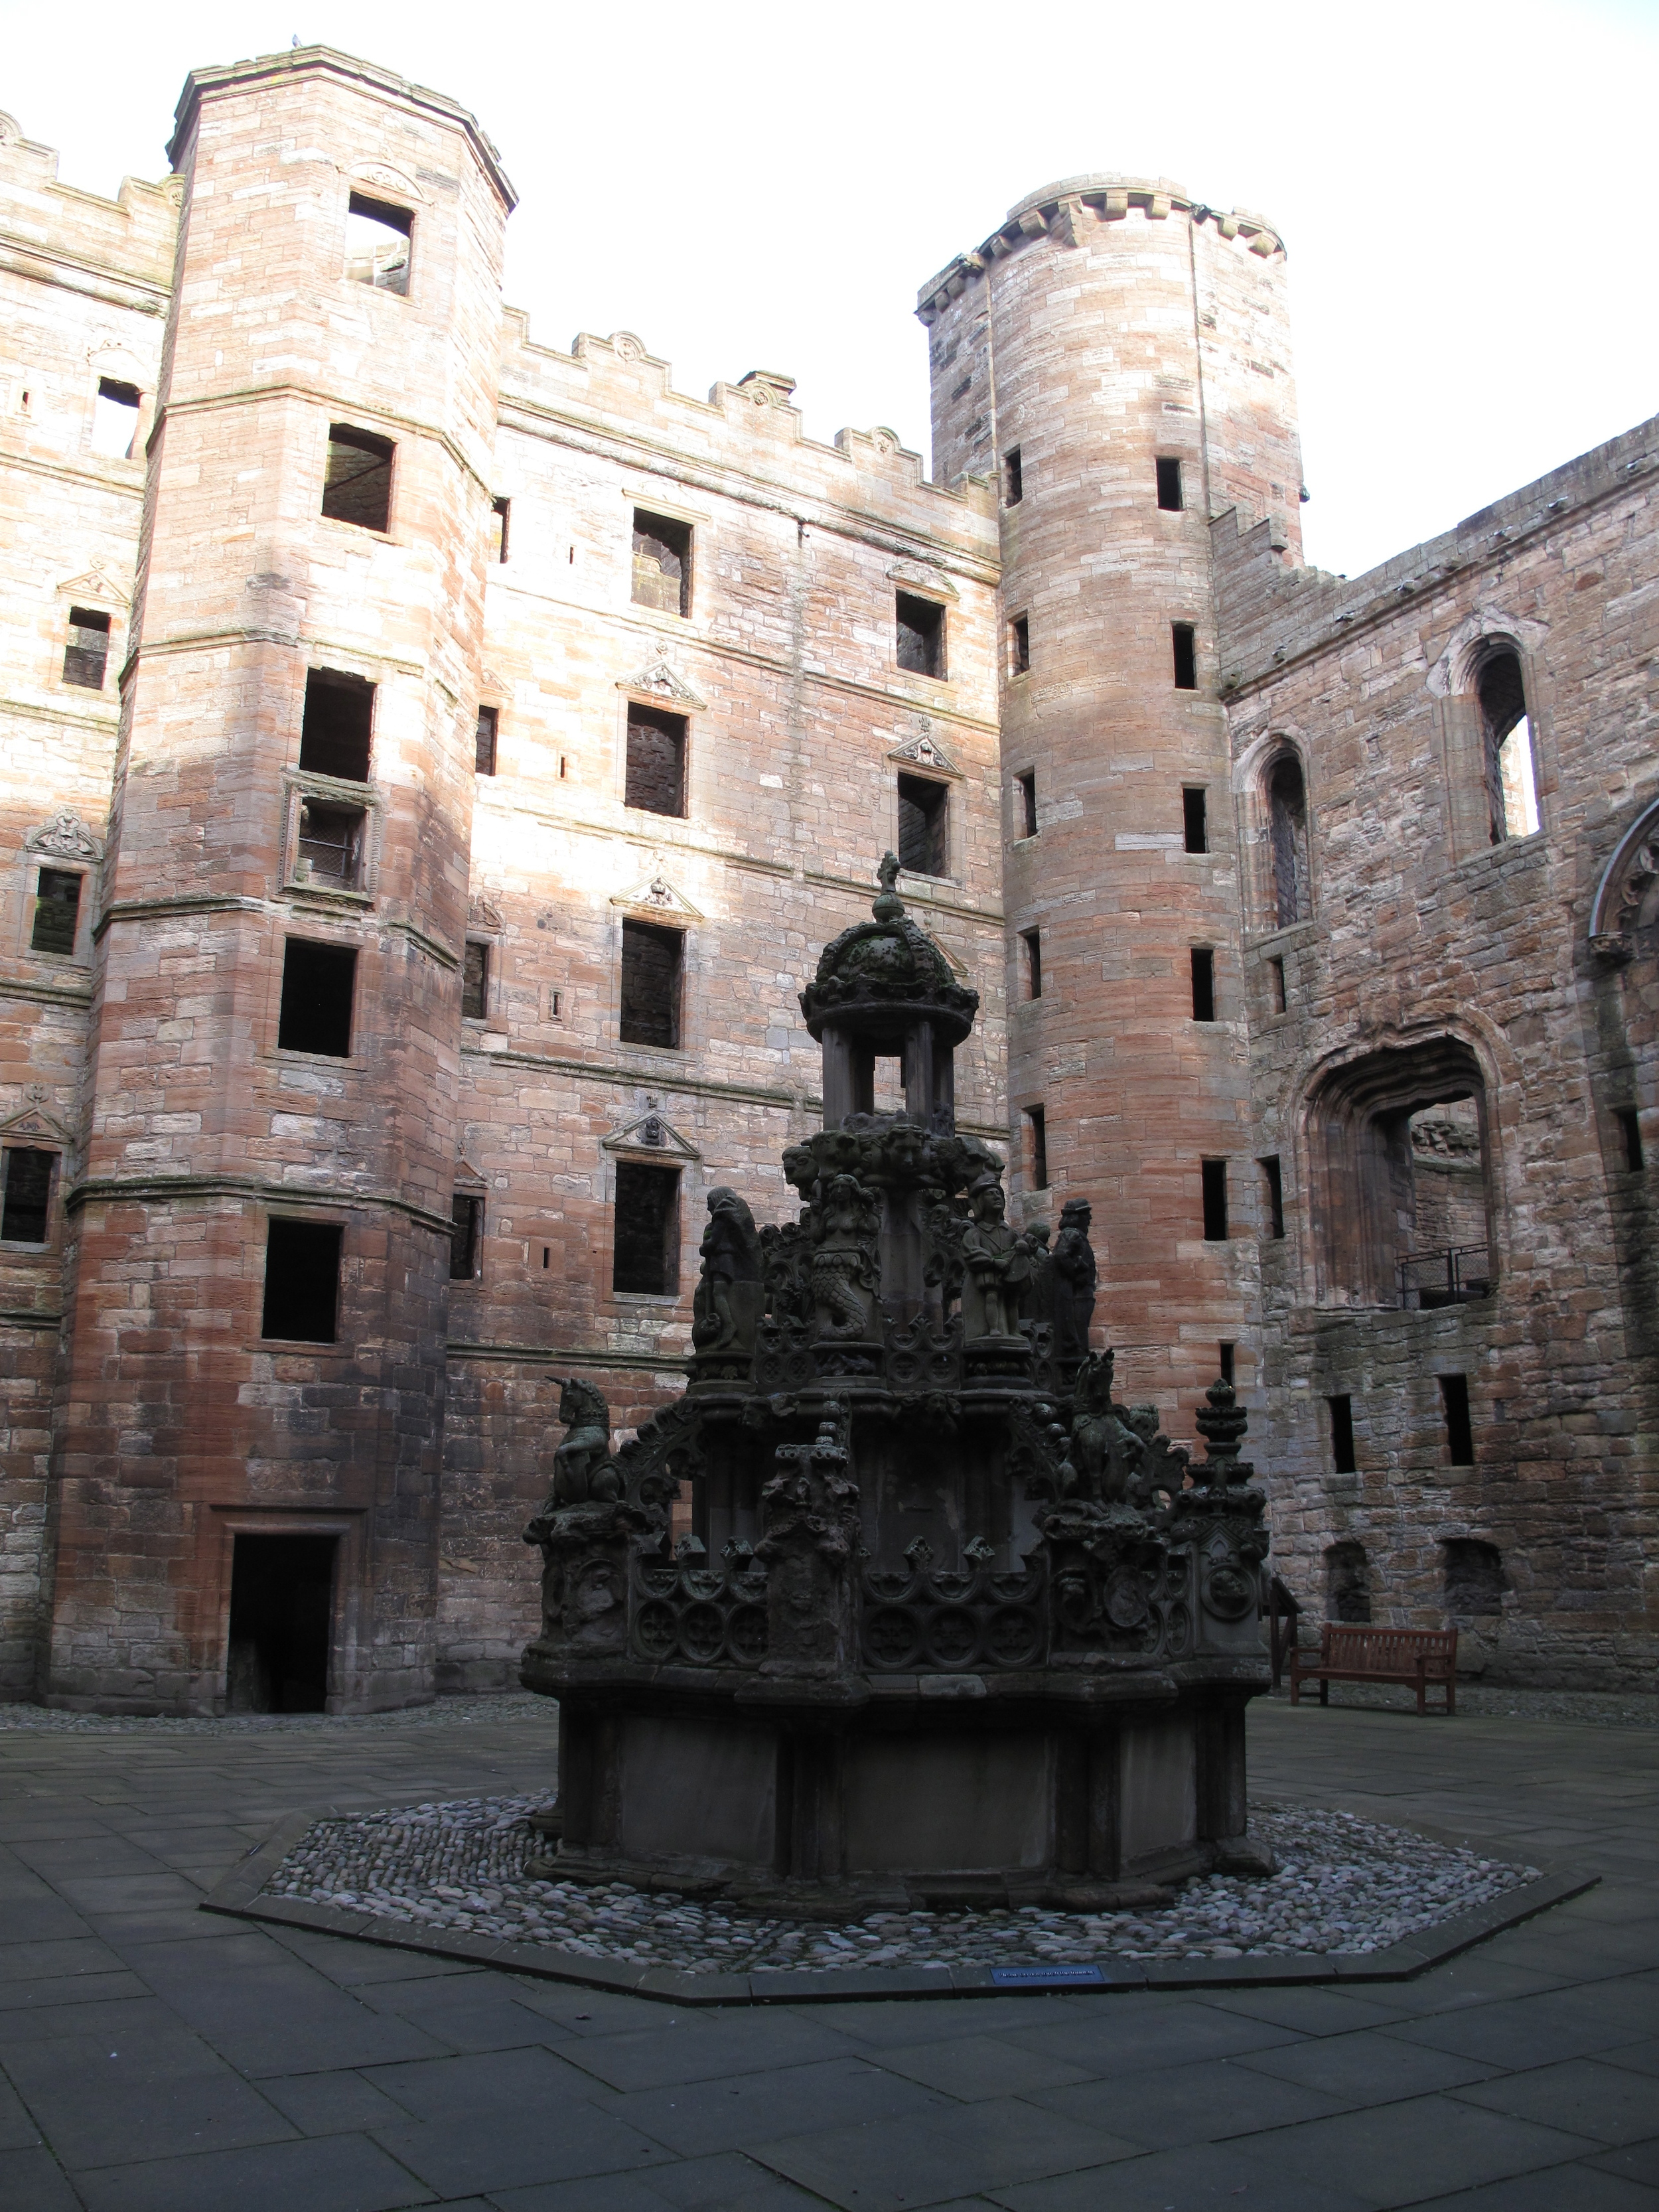 Linlithgow Palace, inner courtyard and fountain.